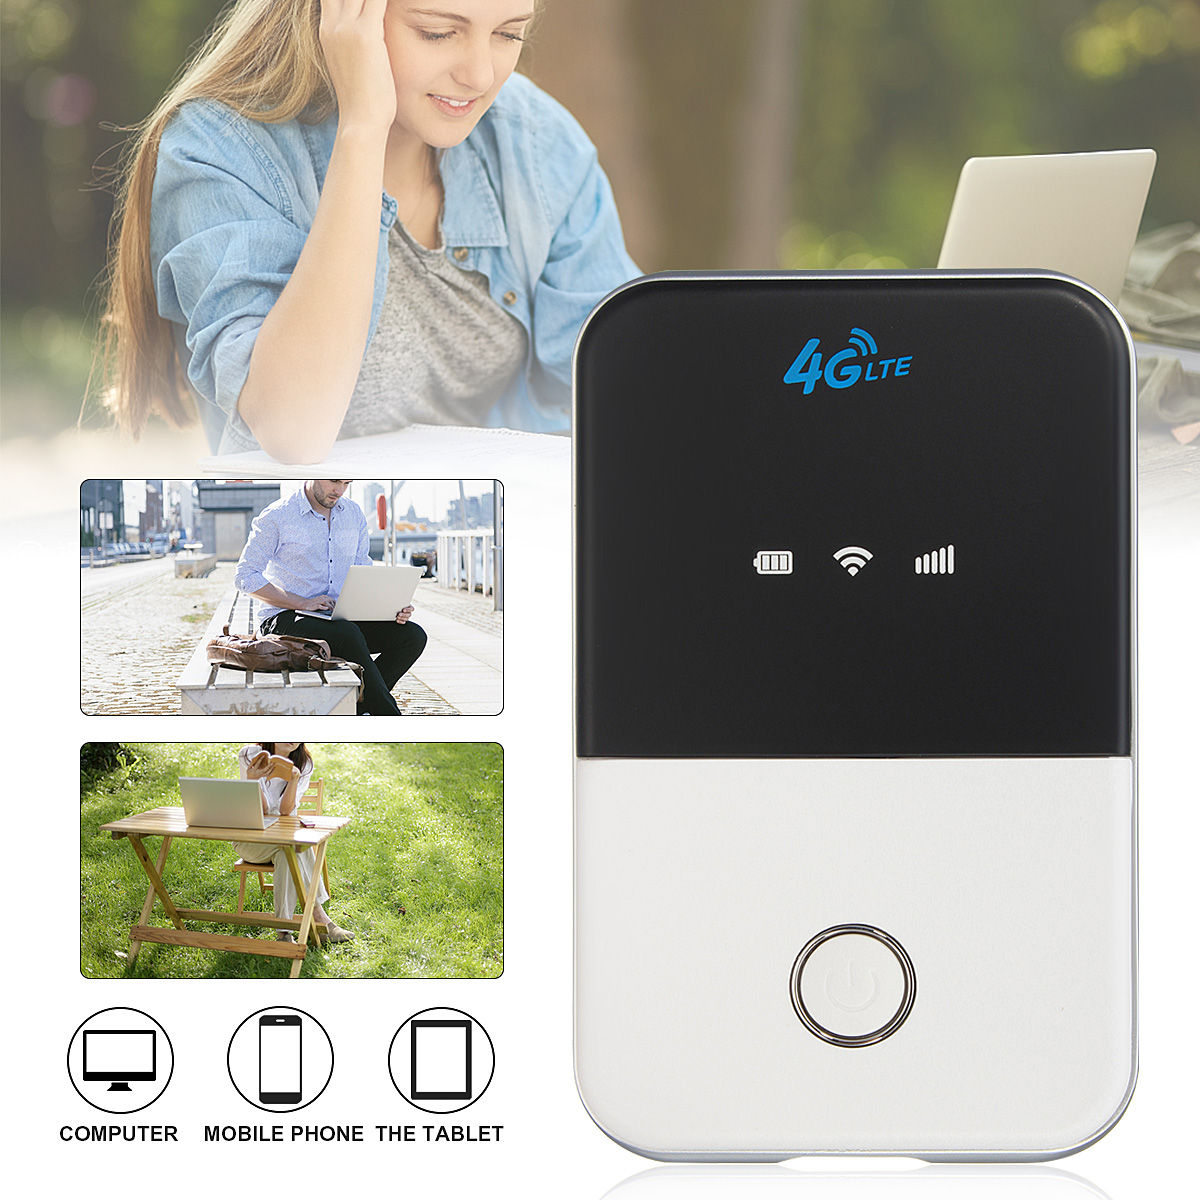 4G Wifi Router mini router 3G 4G Lte Wireless Portable Pocket wi fi Mobile Hotspot Car Wi-fi Router 140f1142 devireg smart интеллектуальный с wi fi бежевый 16 а